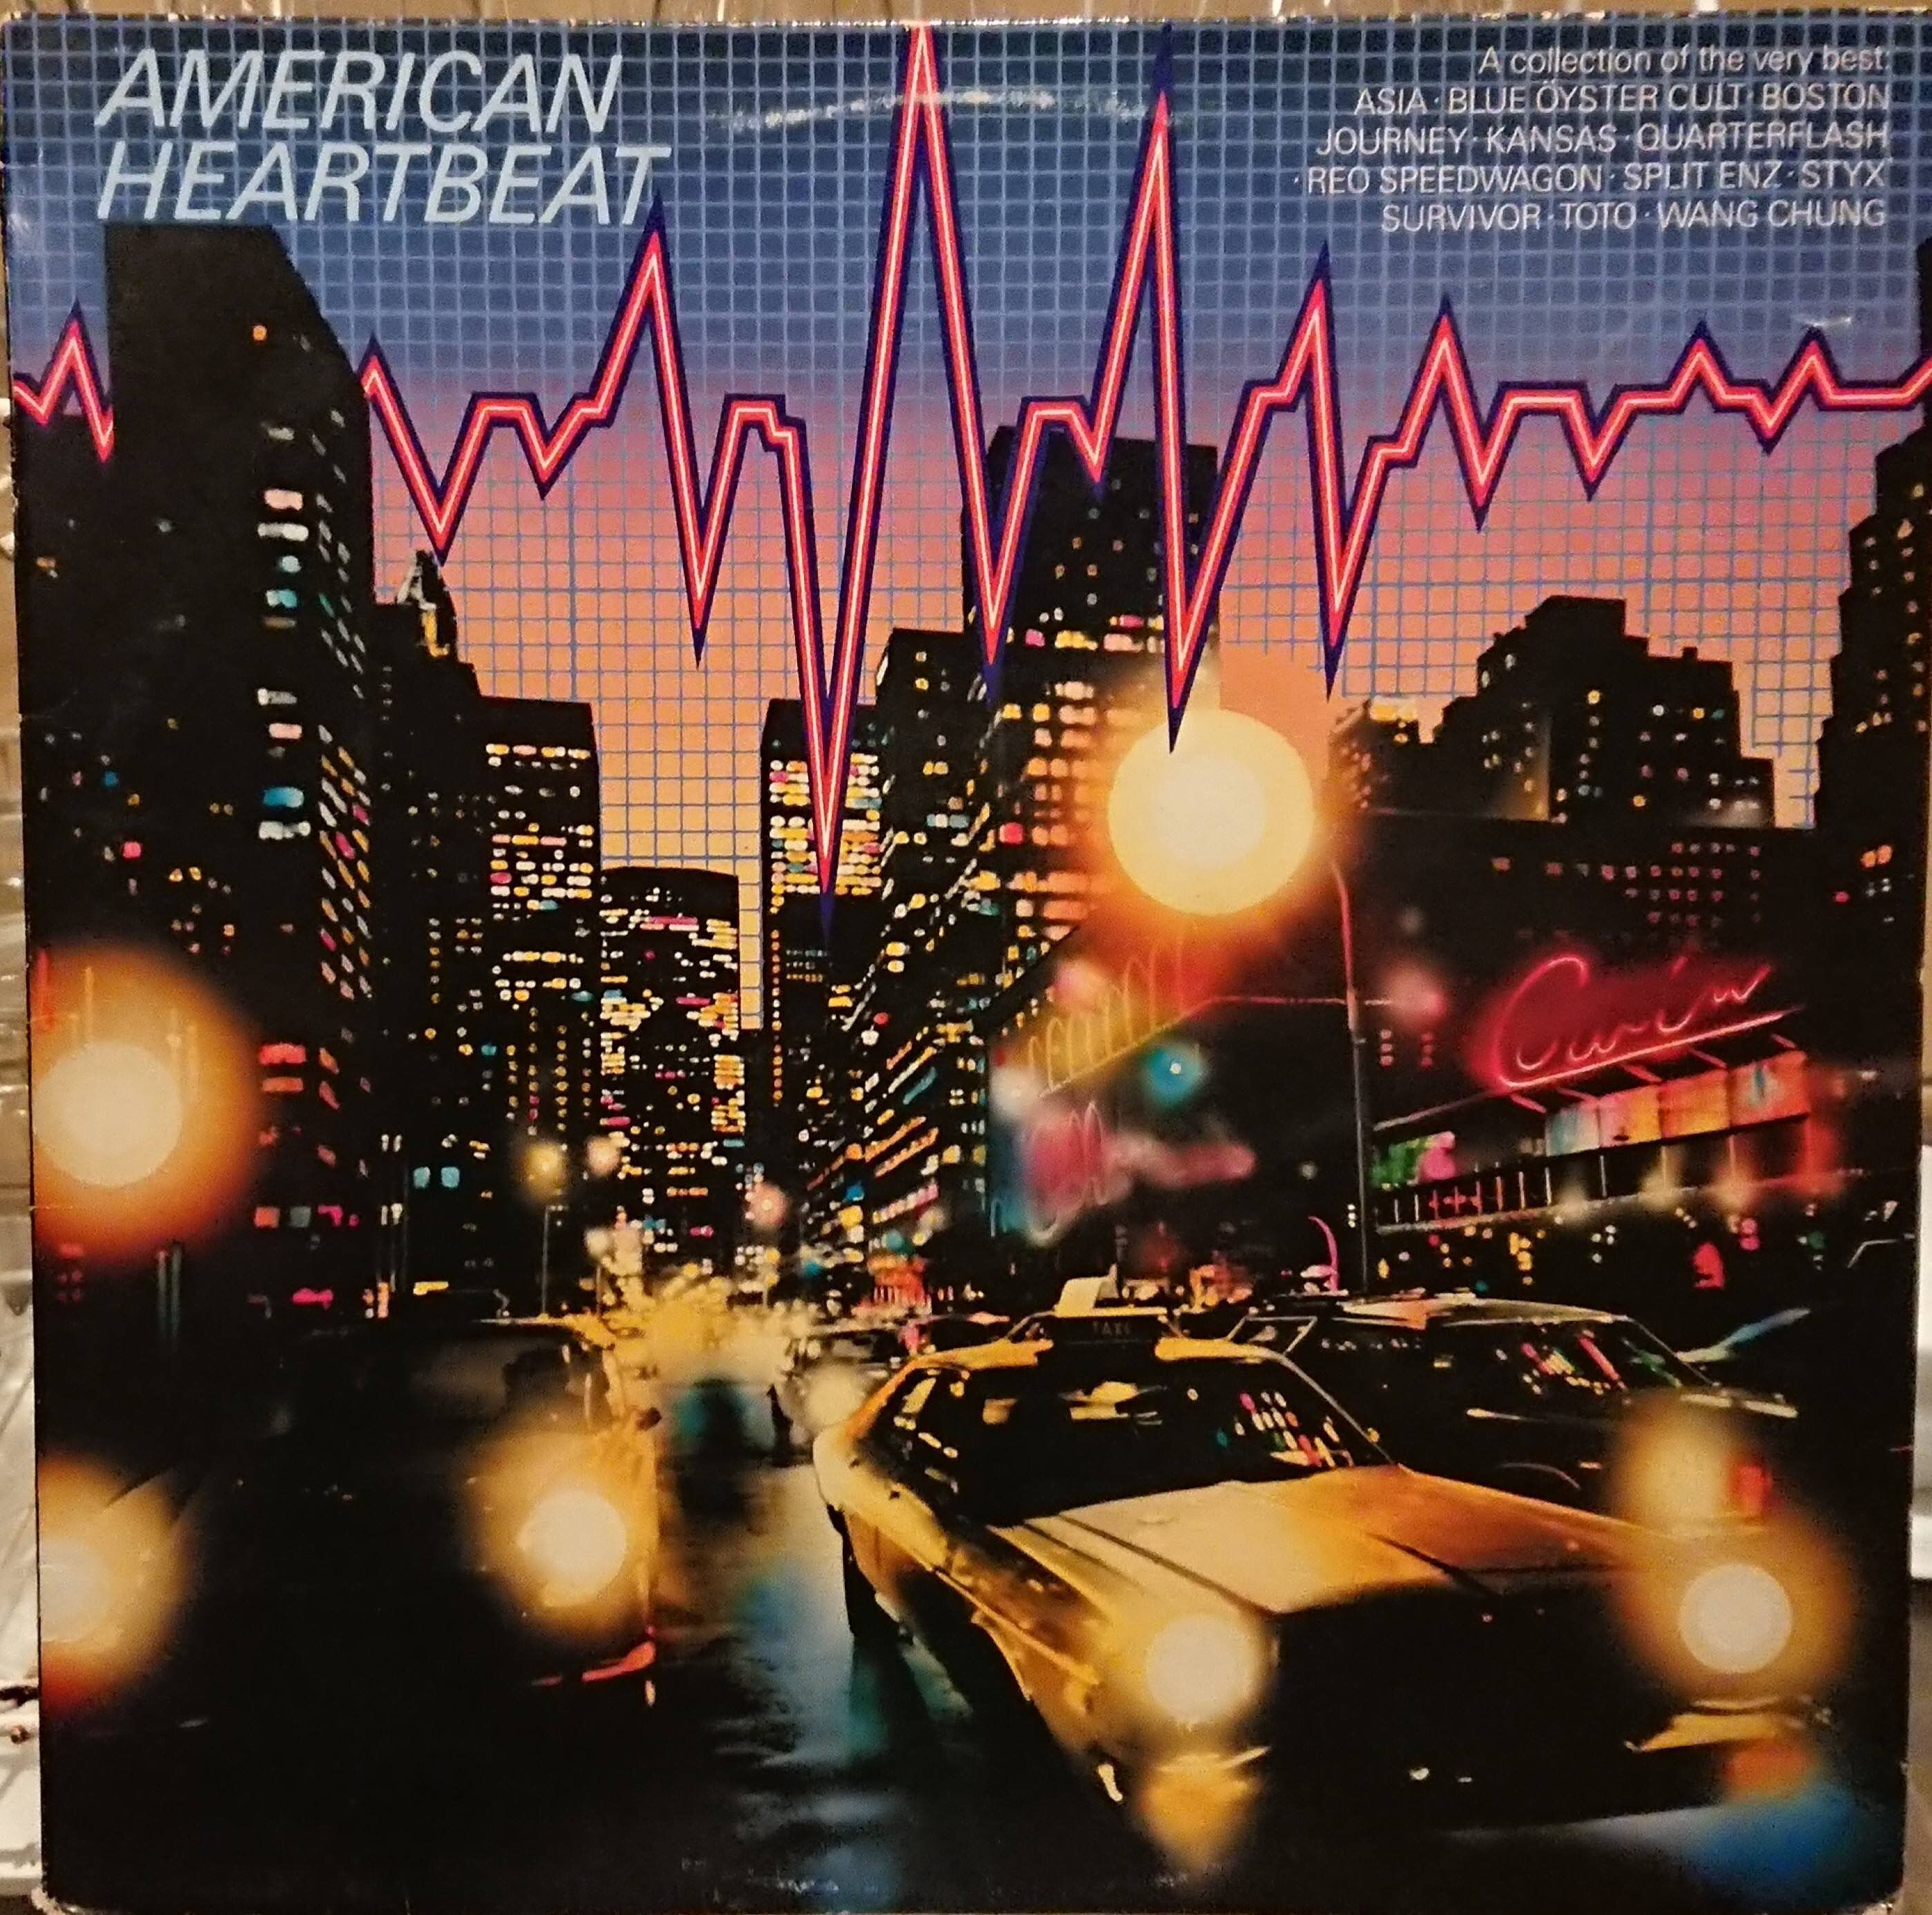 Various American Heartbeat (1984) (con immagini)